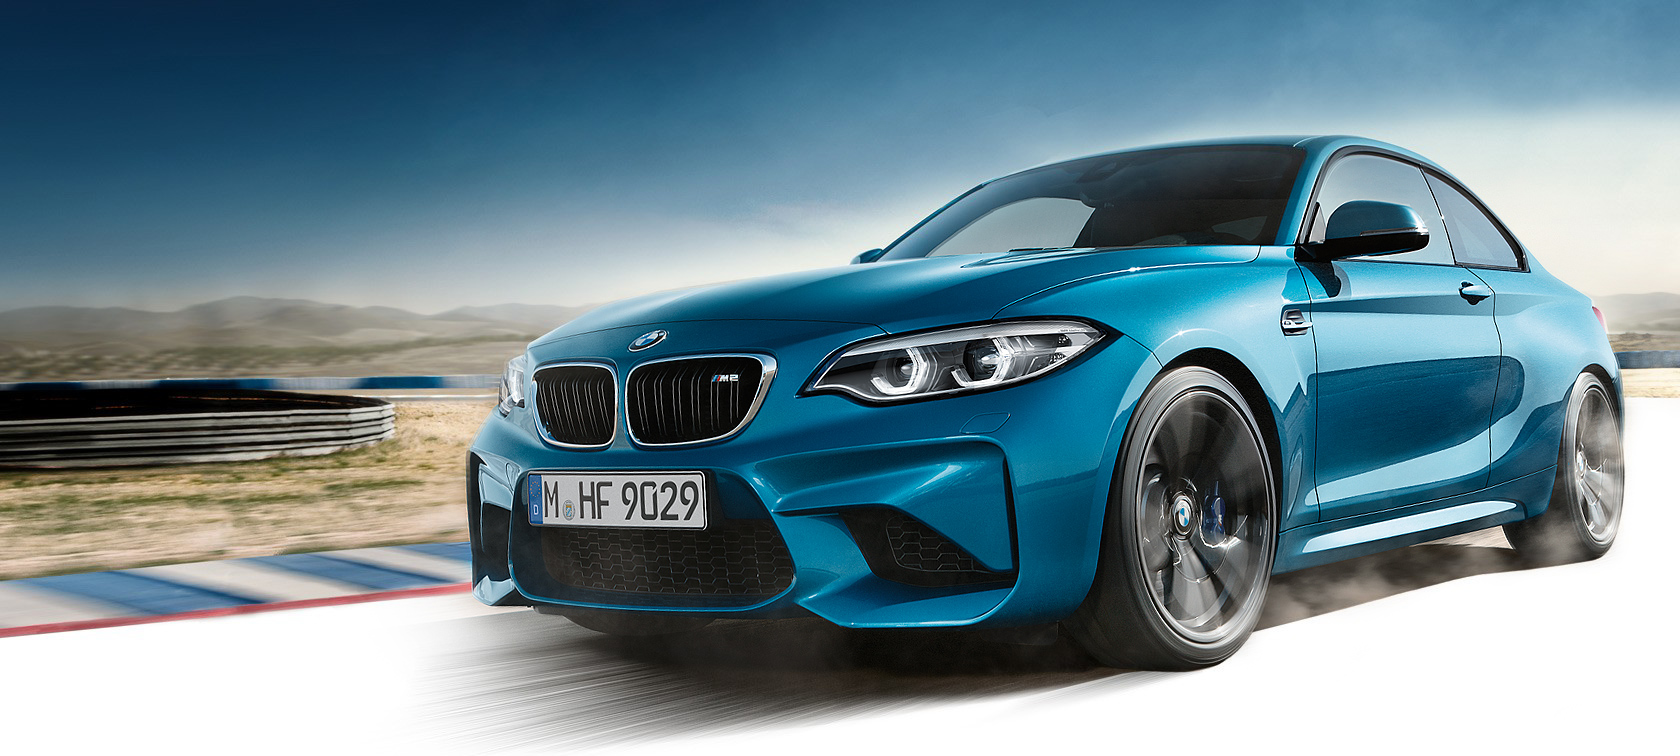 Driving dynamics & efficiency of the BMW M2 Coupé